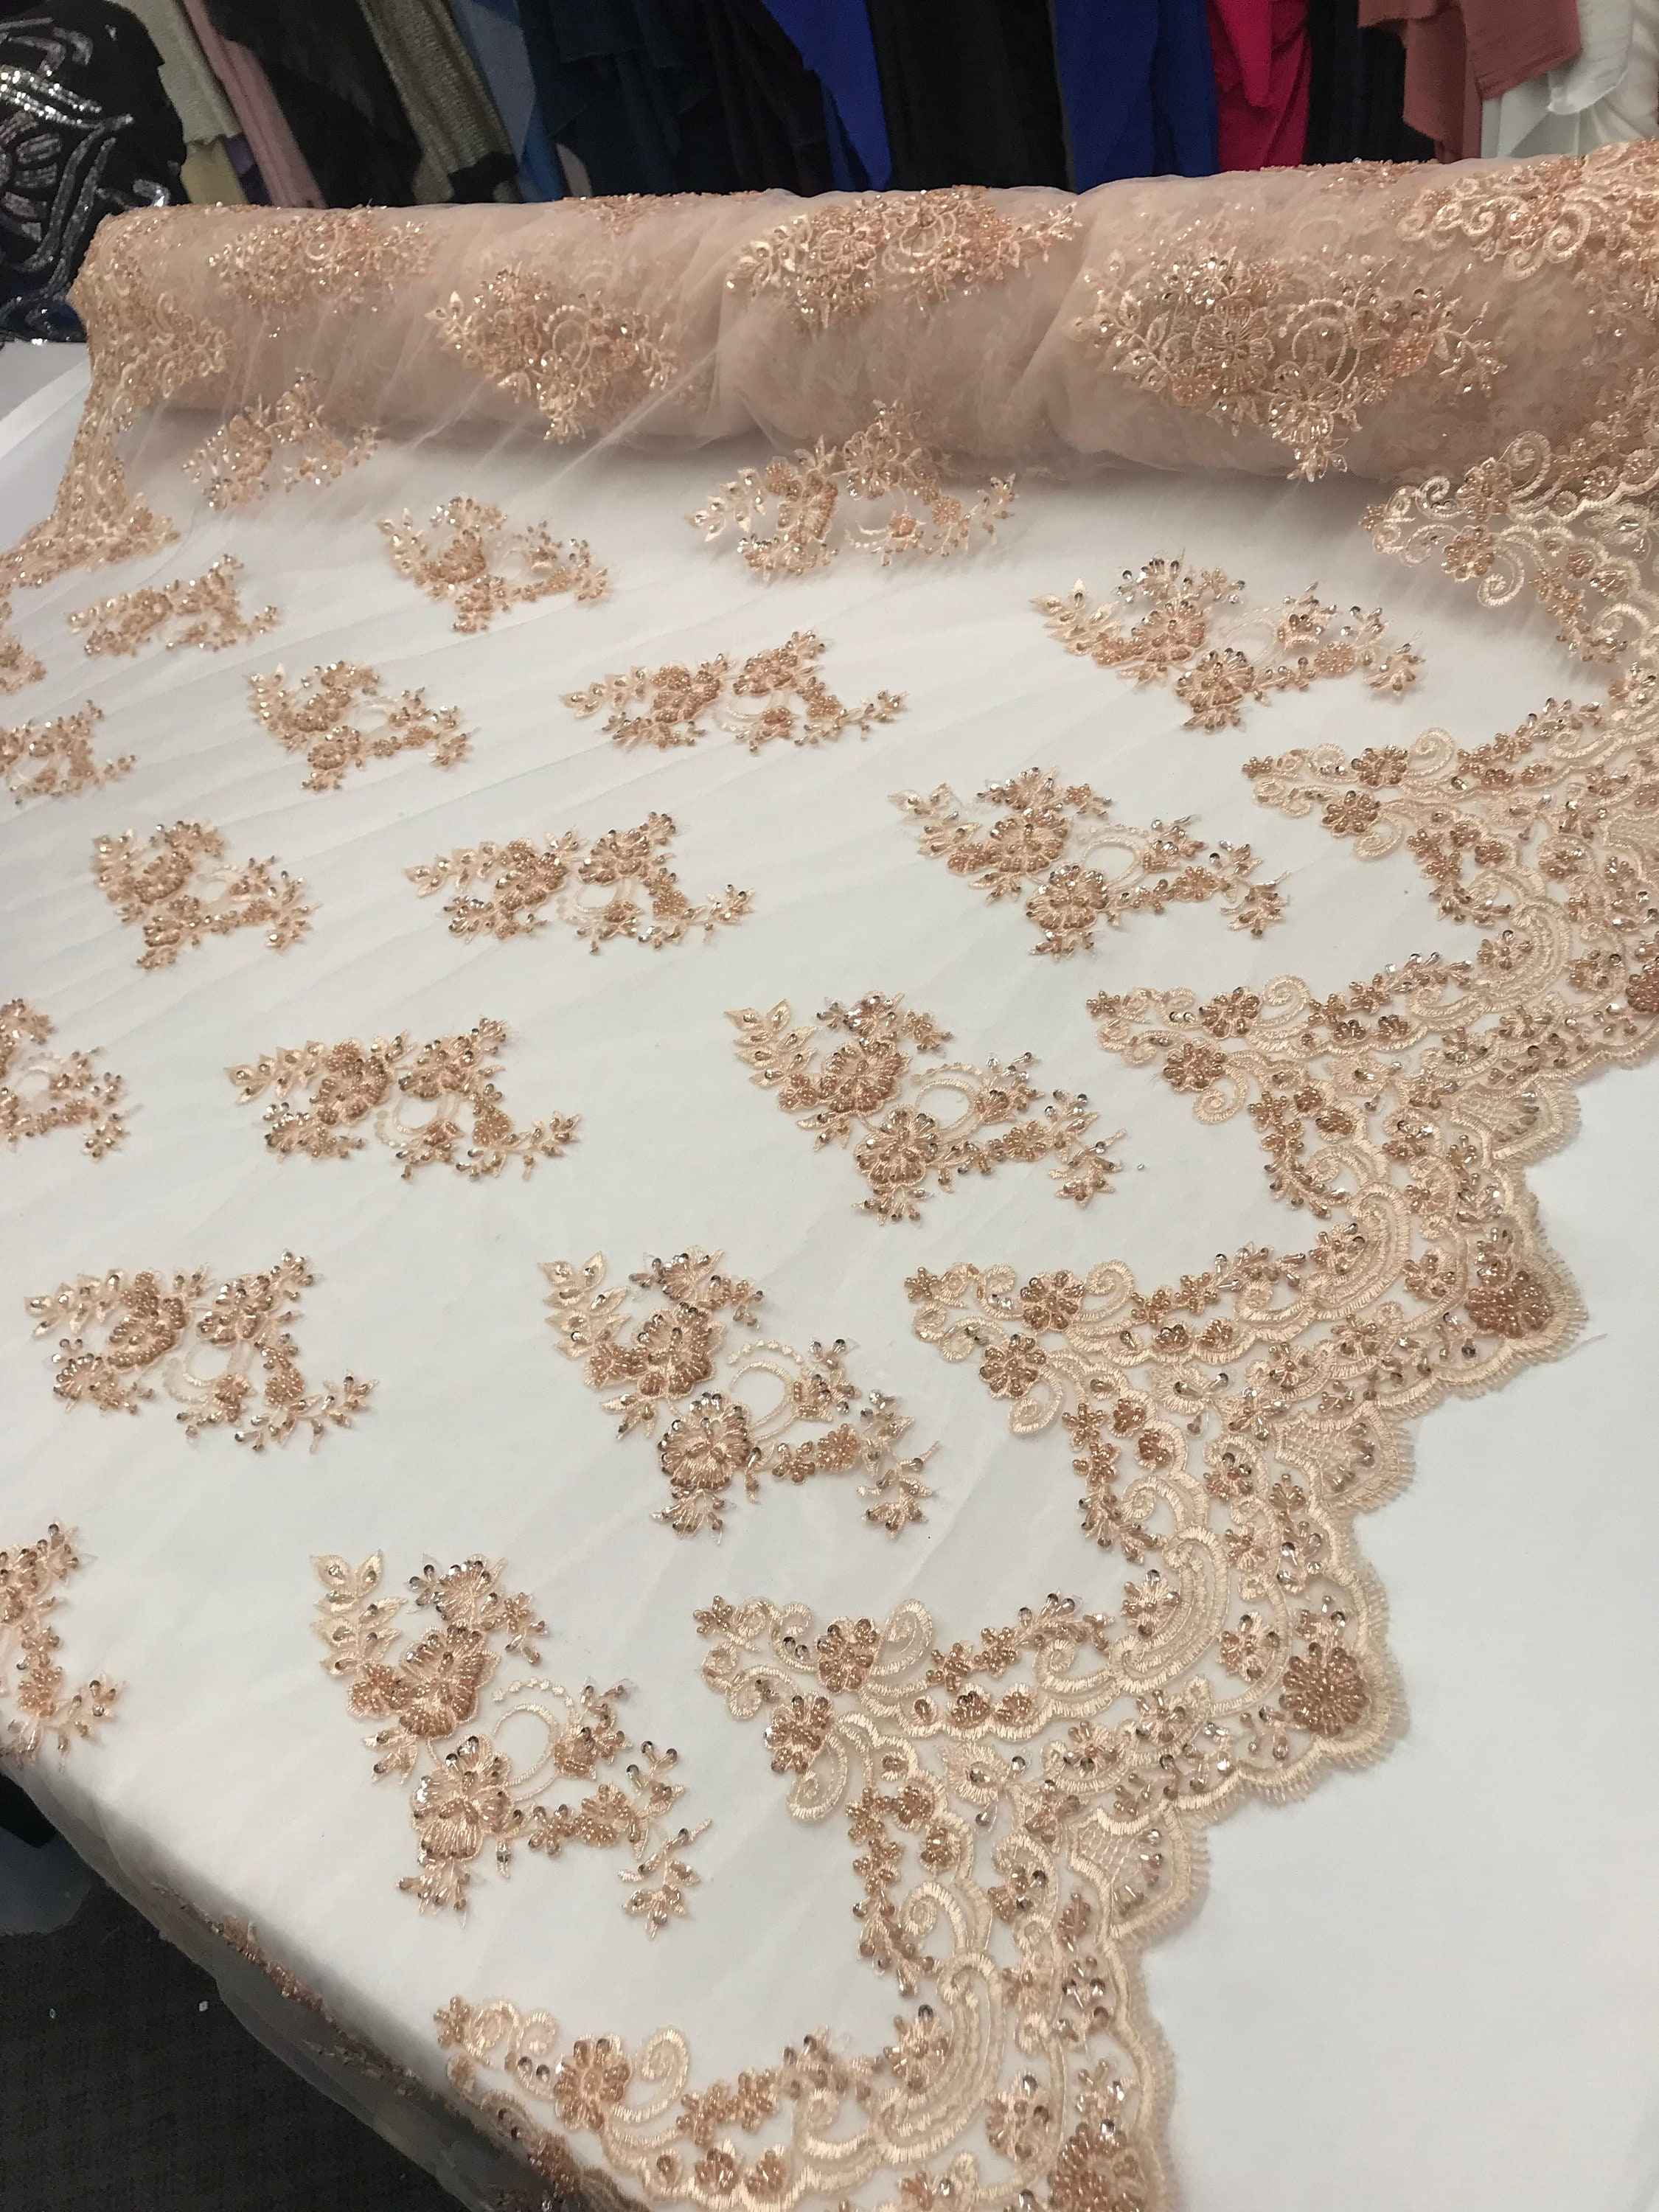 BLUSH  Mesh Lace Bridal Beaded With Sequins Women Fashion Decoration Prom  Wedding Dresses By Yard Tablecloths, Runners, Skirts,night Dress